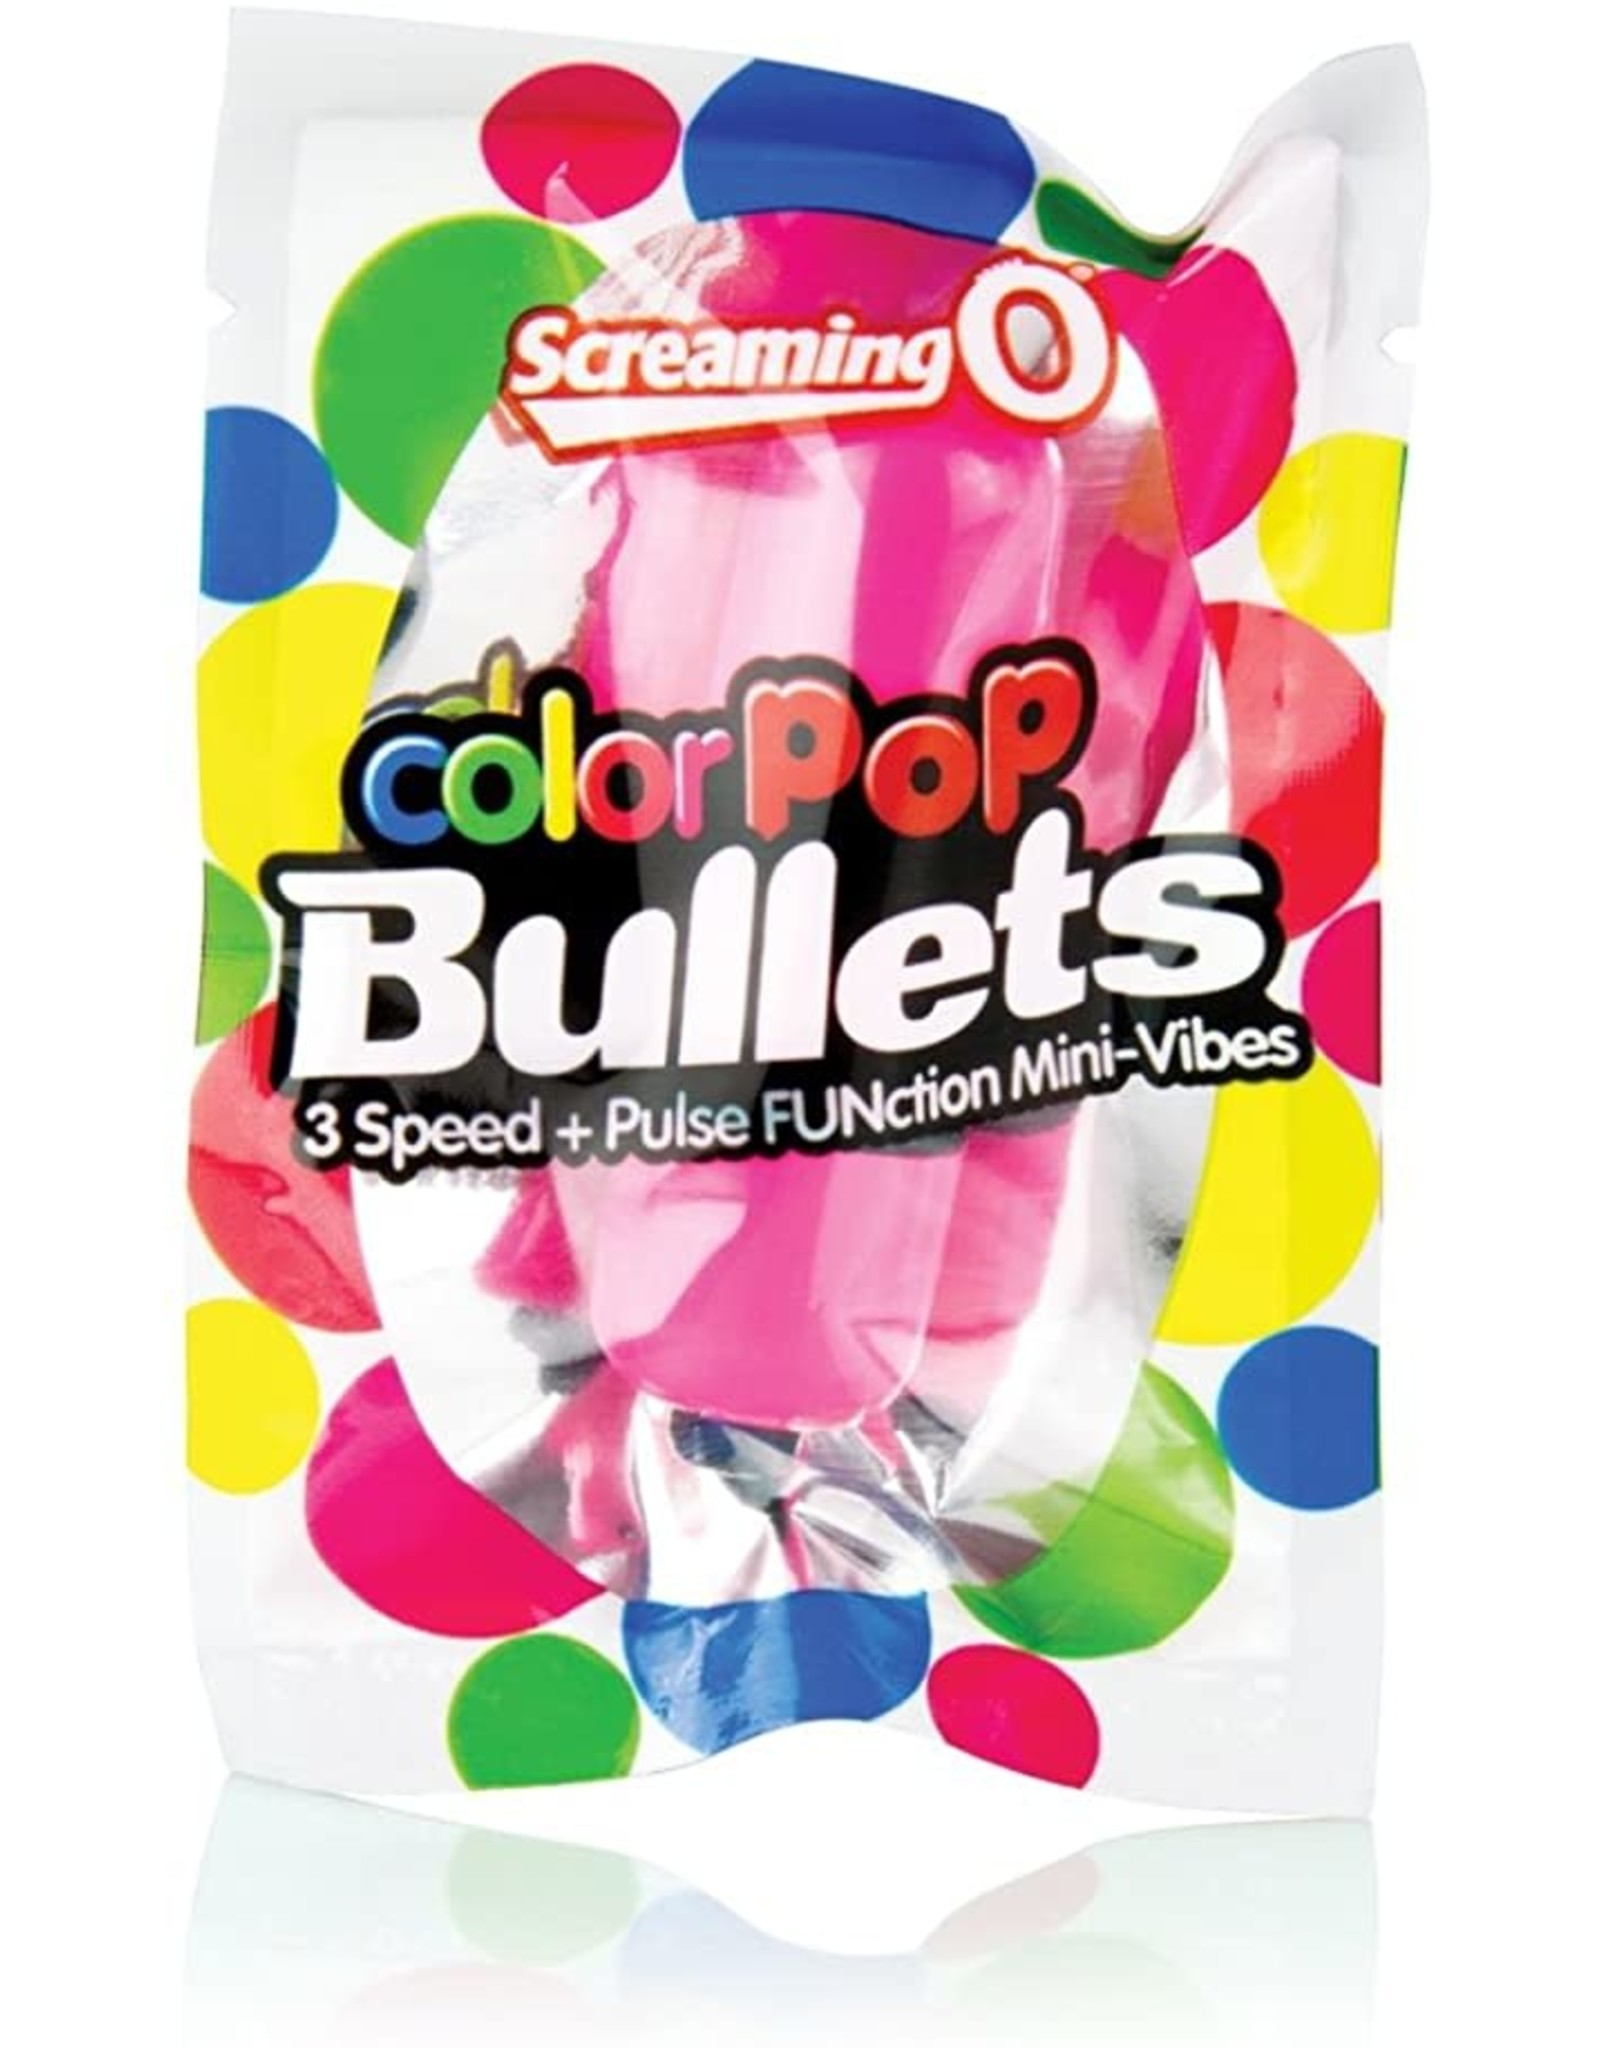 SCREAMING O - COLOR POP 3 SPEED BULLET - PINK